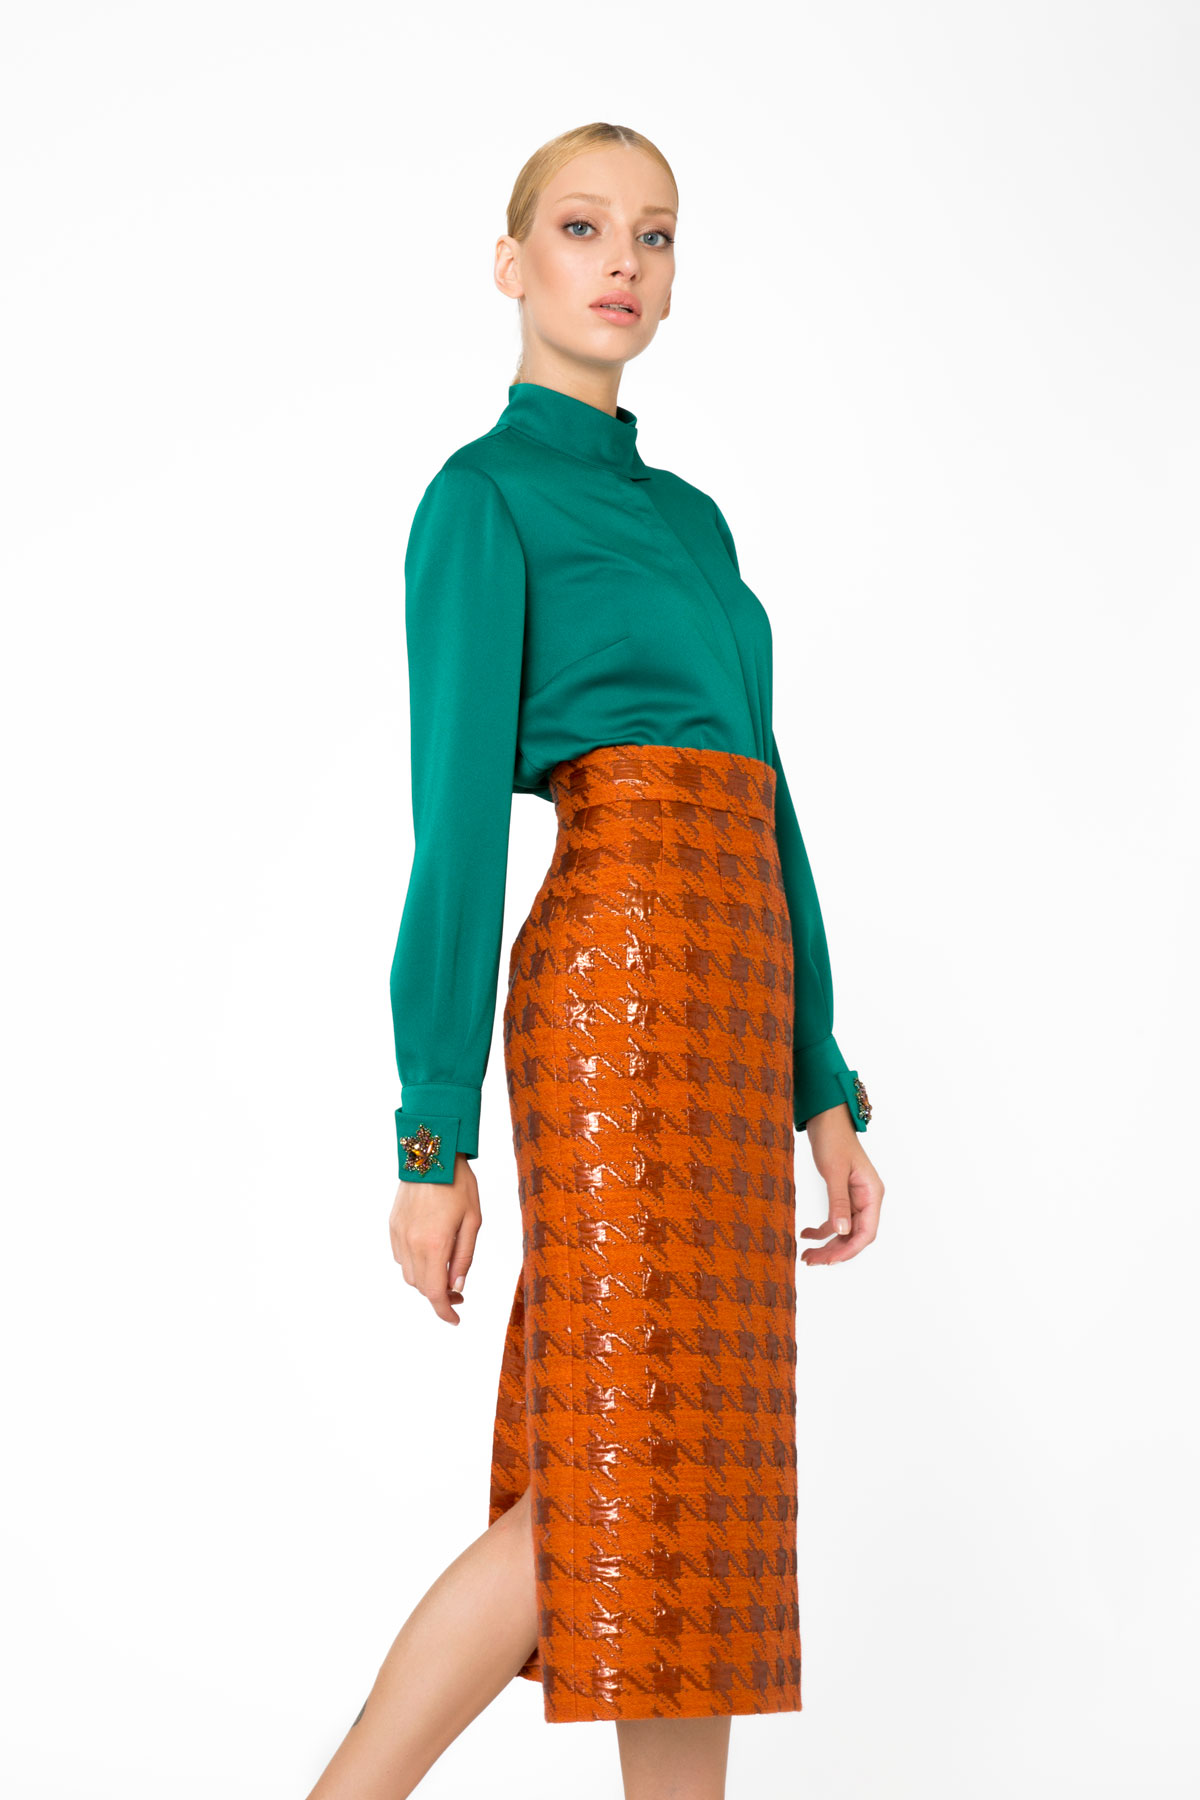 Jacquard Knit Midi High Waist Orange Skirt